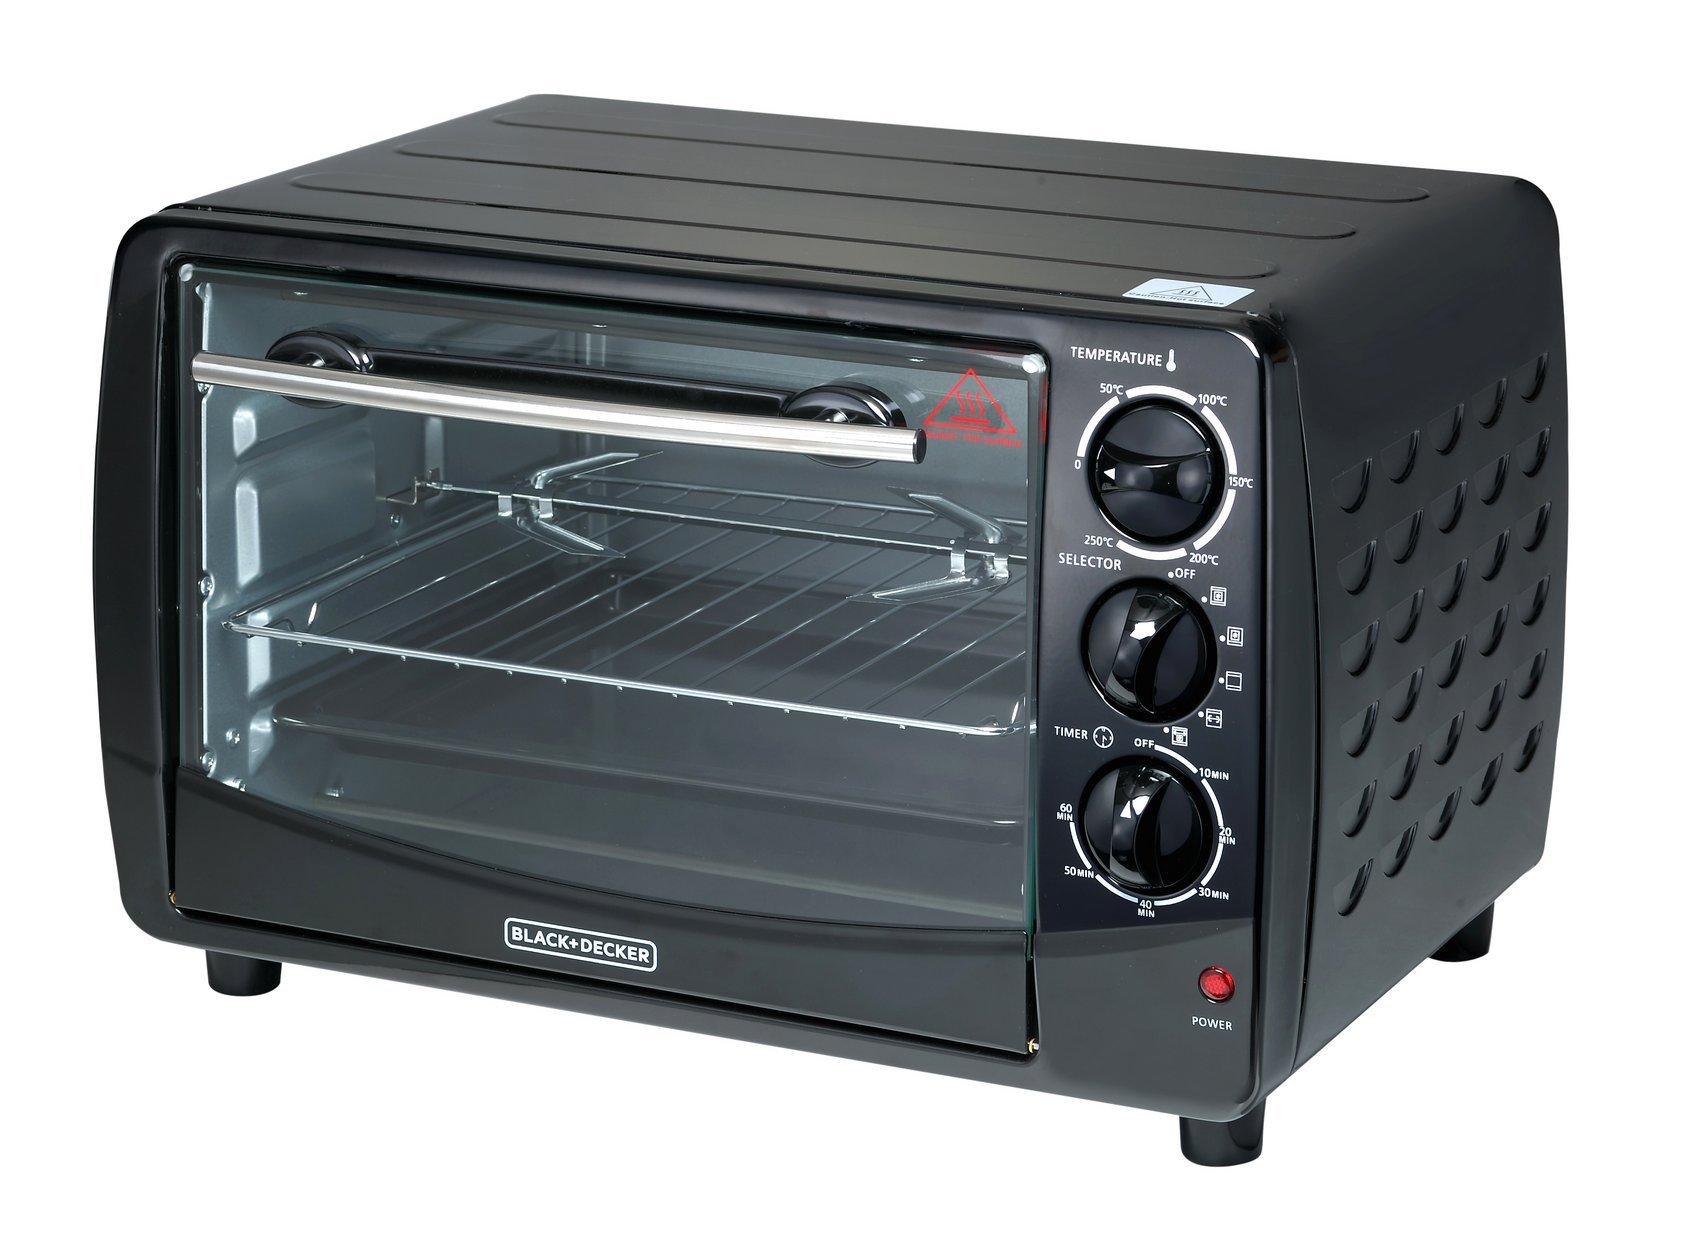 Black and Decker TRO50 28-Liter Toaster Oven, Large